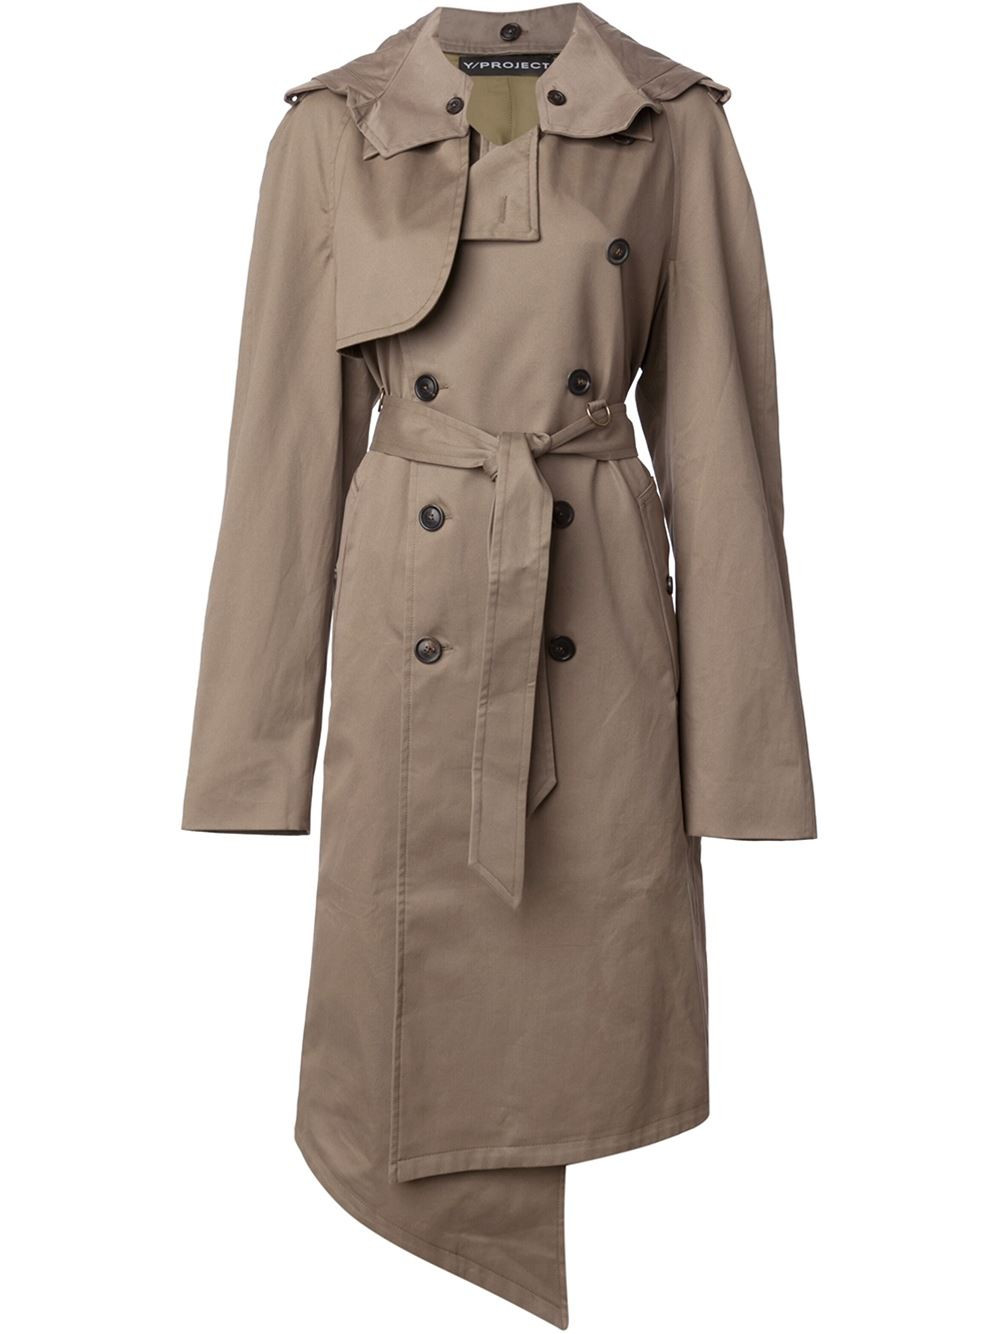 Y. project Beige Hooded Trench Coat in Natural for Men